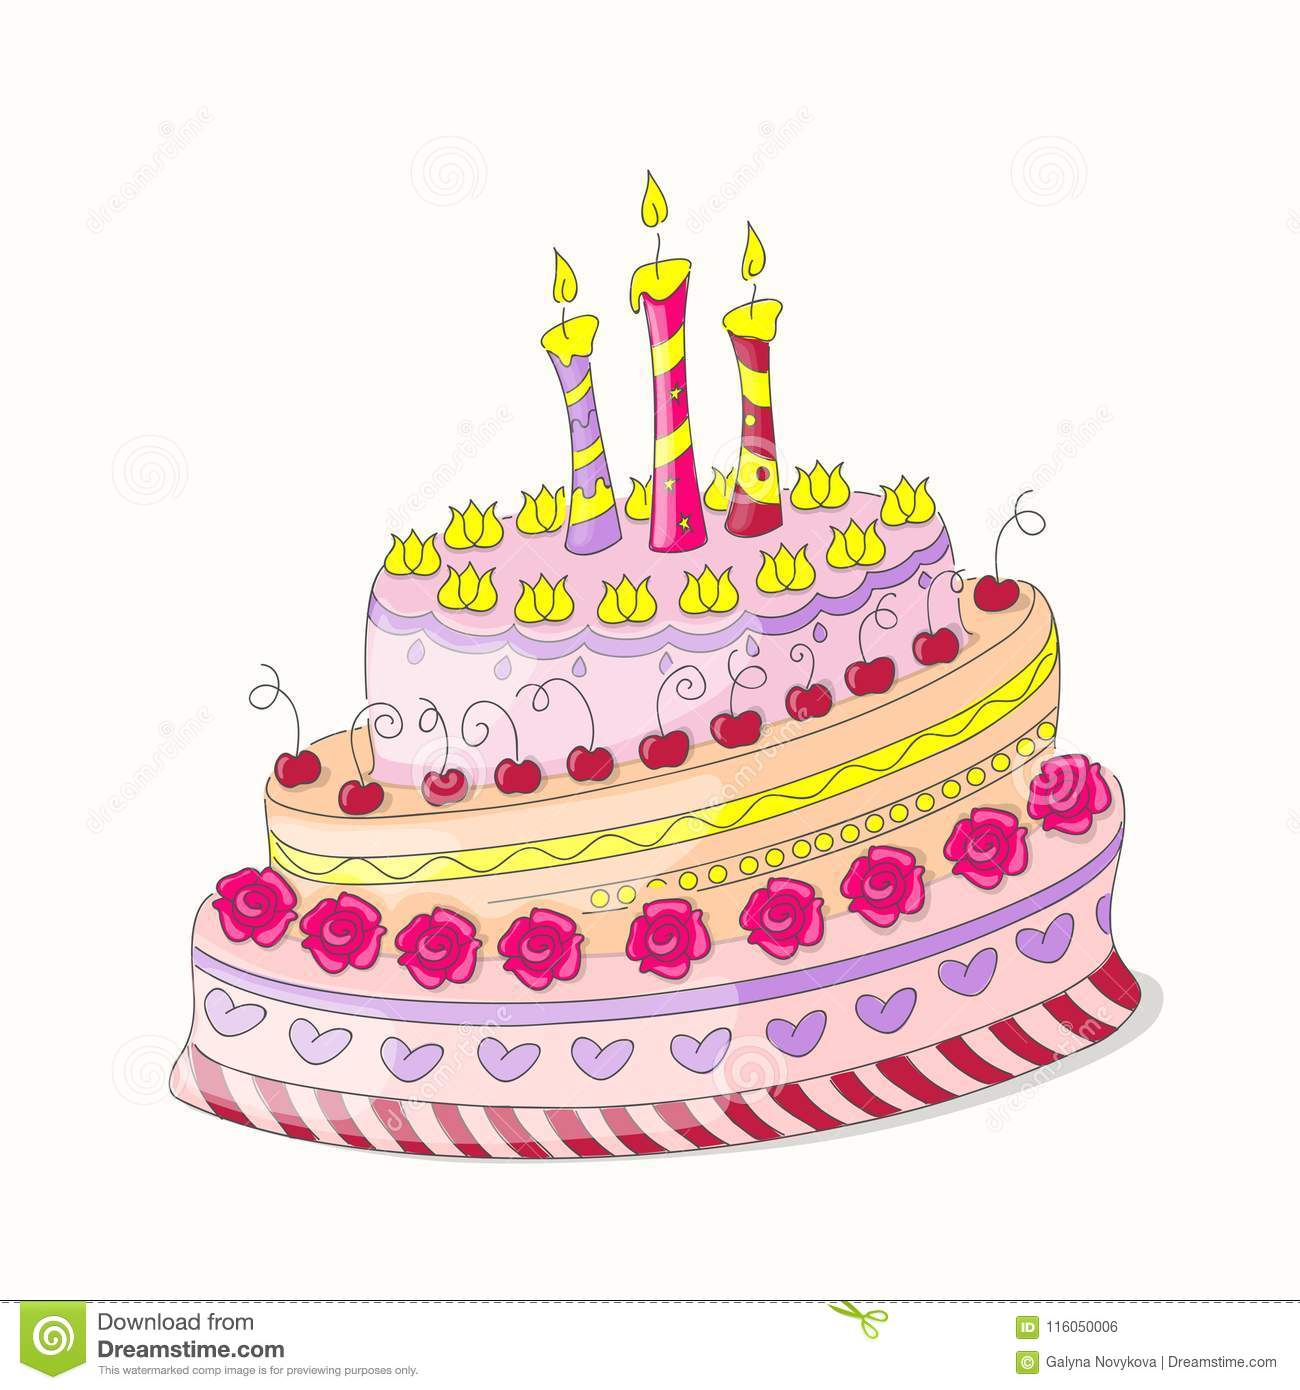 Doodle Colorful Birthday Cake With Roses And Three Candles